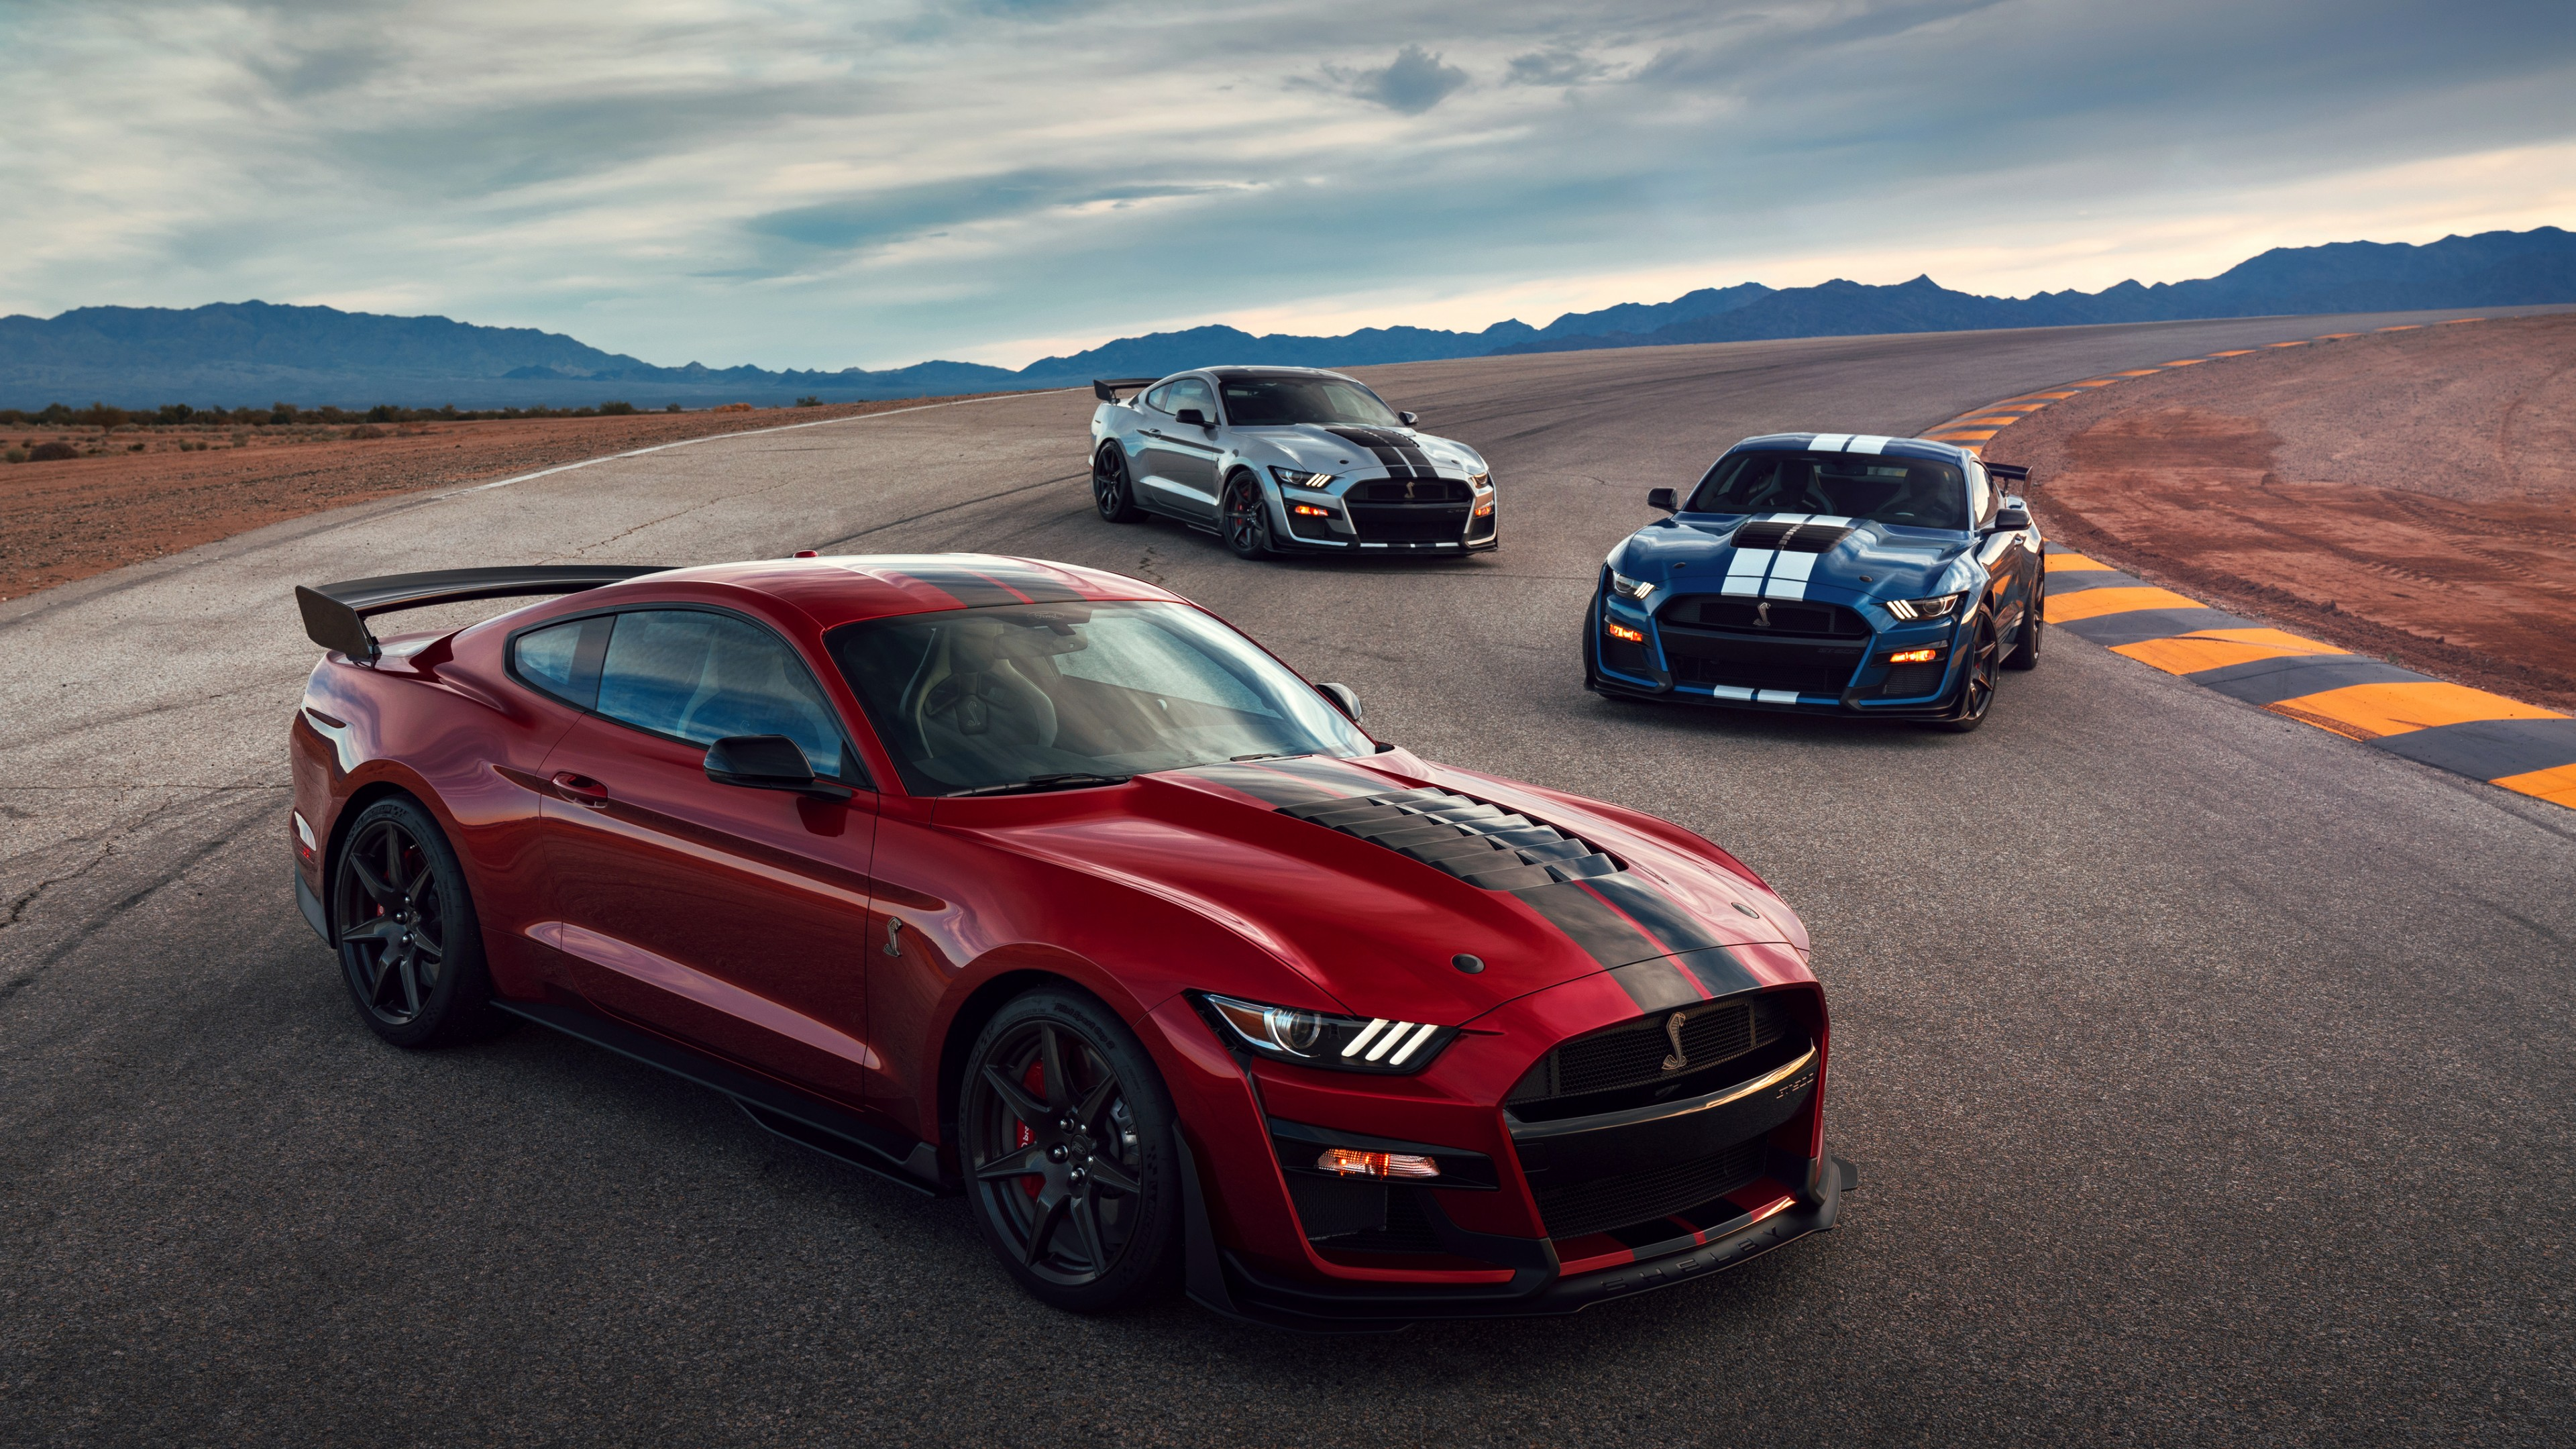 Ford F150 Shelby >> 2020 Ford Mustang Shelby GT500 4K 3 Wallpaper | HD Car Wallpapers | ID #11889